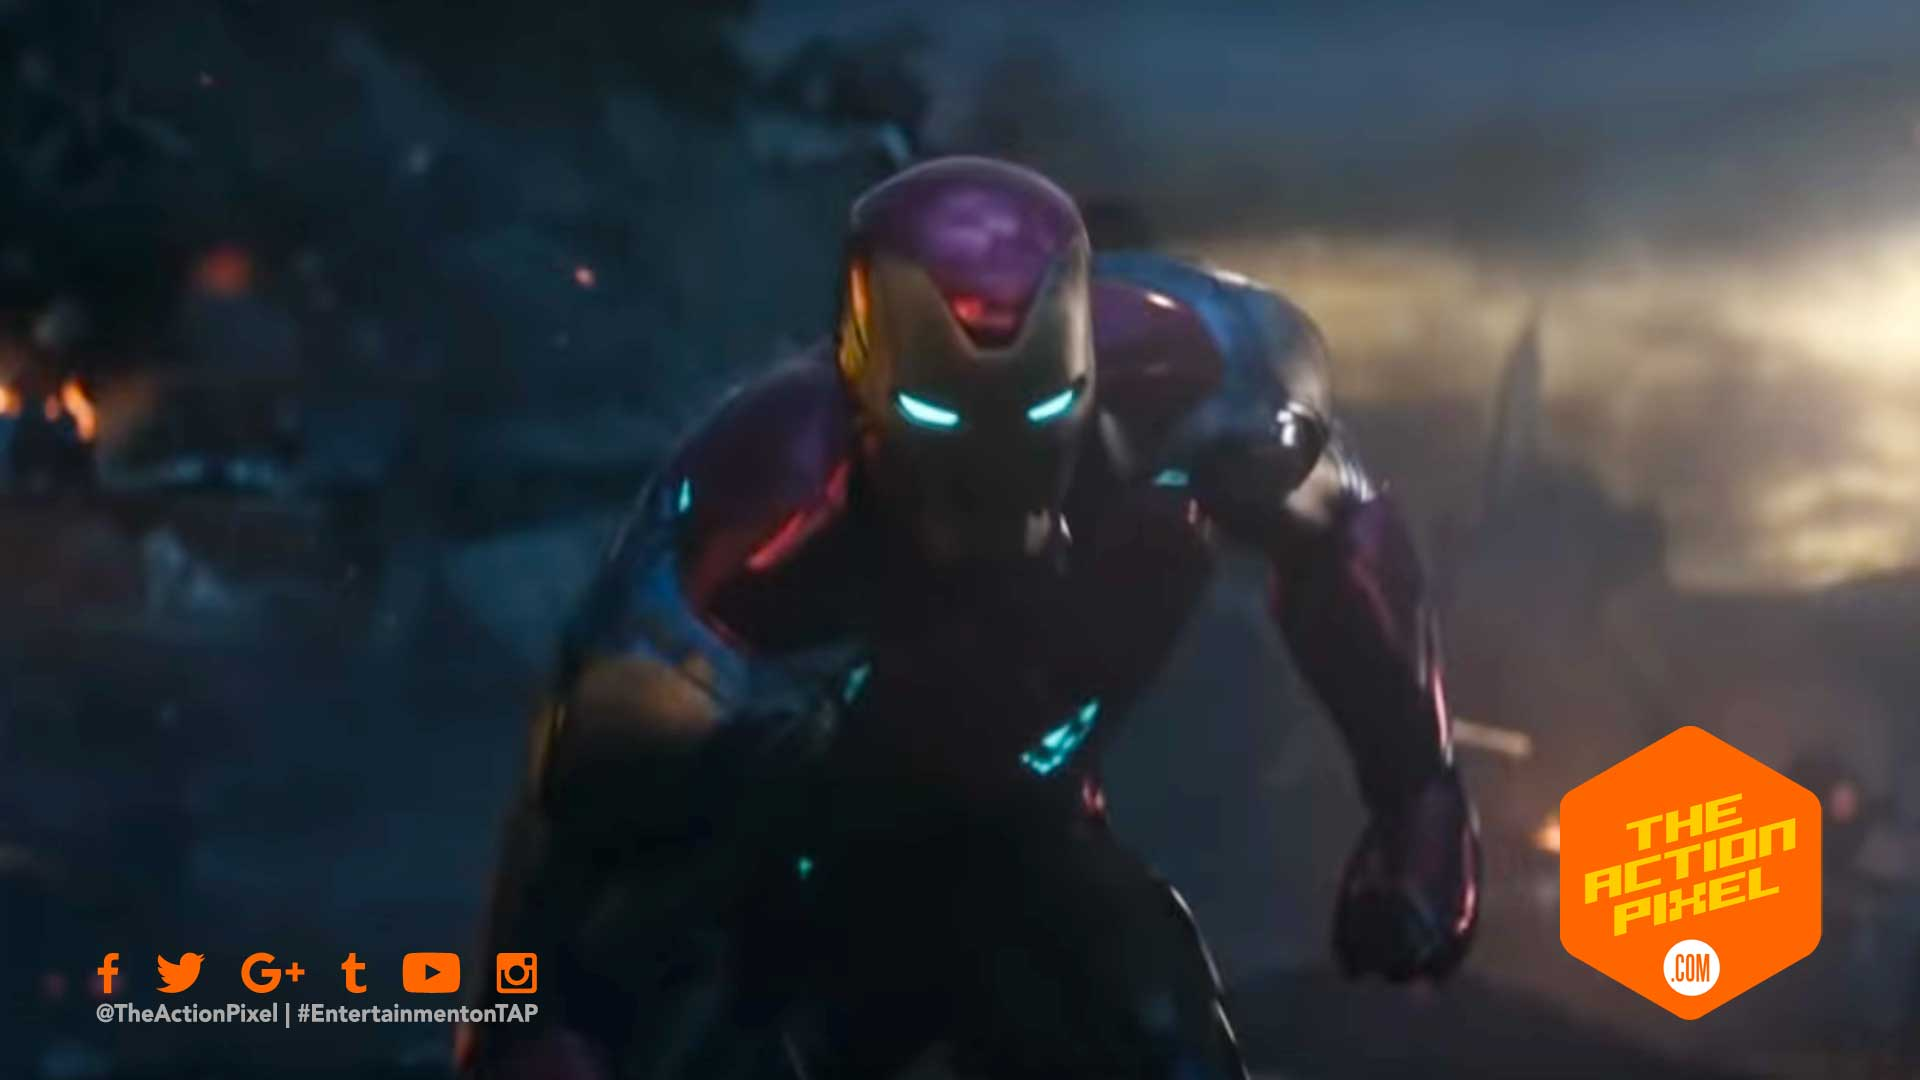 iron man, avengers, endgame, clip, AVENGERS RUN TIME, AVENGERS: ENDGAME RUNTIME, AVENGERS ENDGAME RUNTIME, AVENGERS ENDGAME RELEASE DATE, AVENGERS, ENDGAME RELEASE DATE UK, hawkeye,avengers: end game, tappolls,avengers 4, the action pixel, entertainment on tap, avengers, iron man, hawkeye, poster, big game , tv spot, avengers poster 2, avengers endgame official trailer, featured,tv spot, mission ,avengers endgame tv spot, no mistakes, to the end